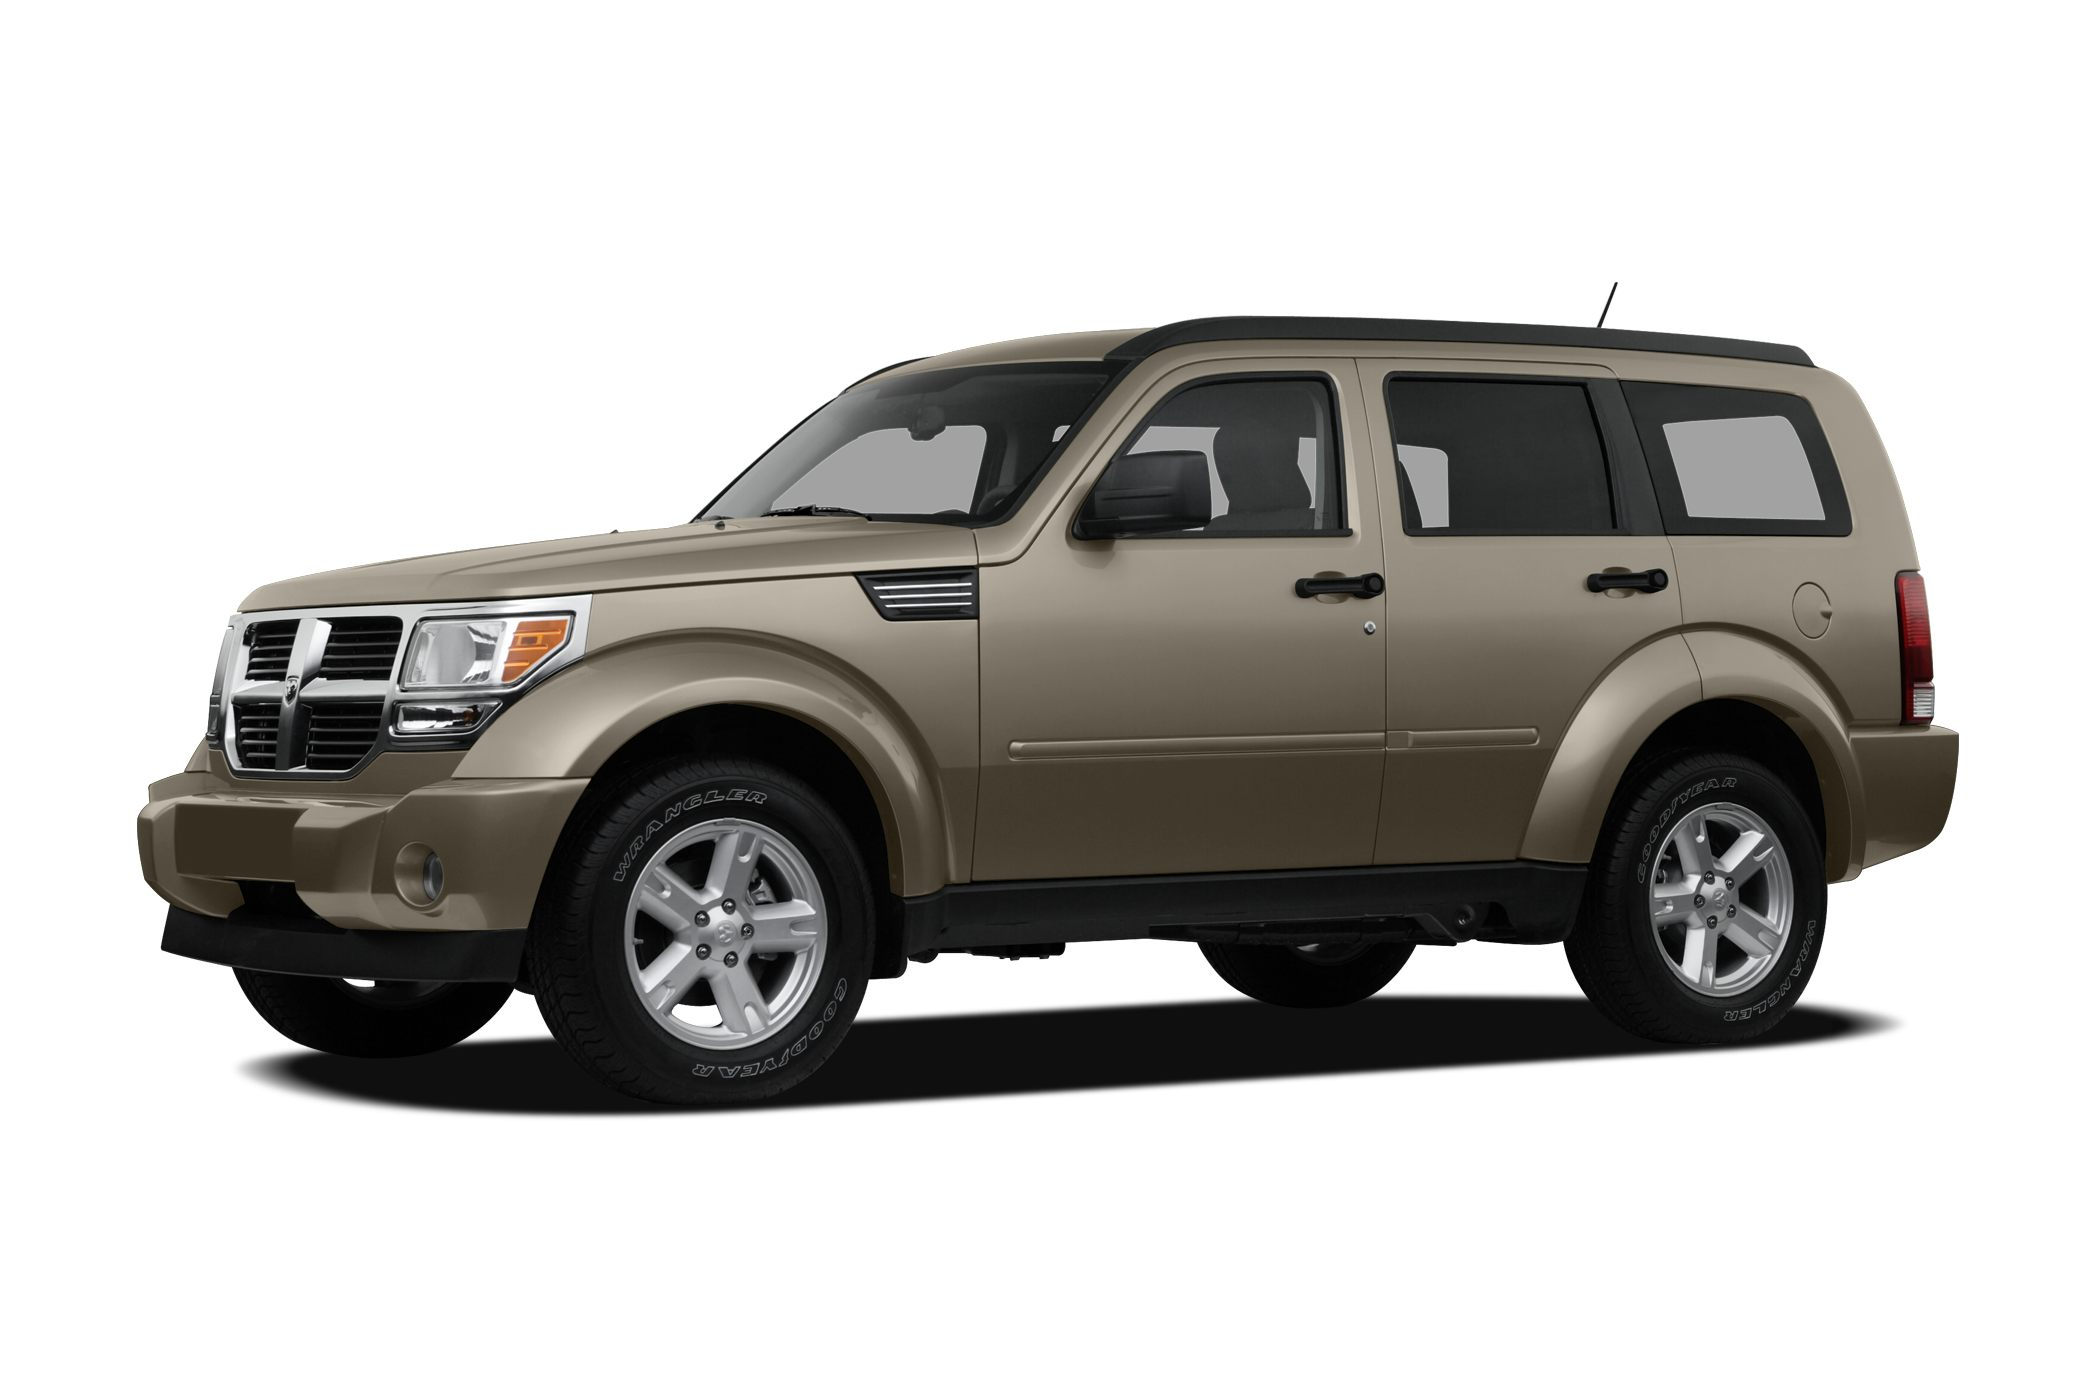 2007 Dodge Nitro SXT SUV for sale in Myerstown for $10,900 with 46,820 miles.